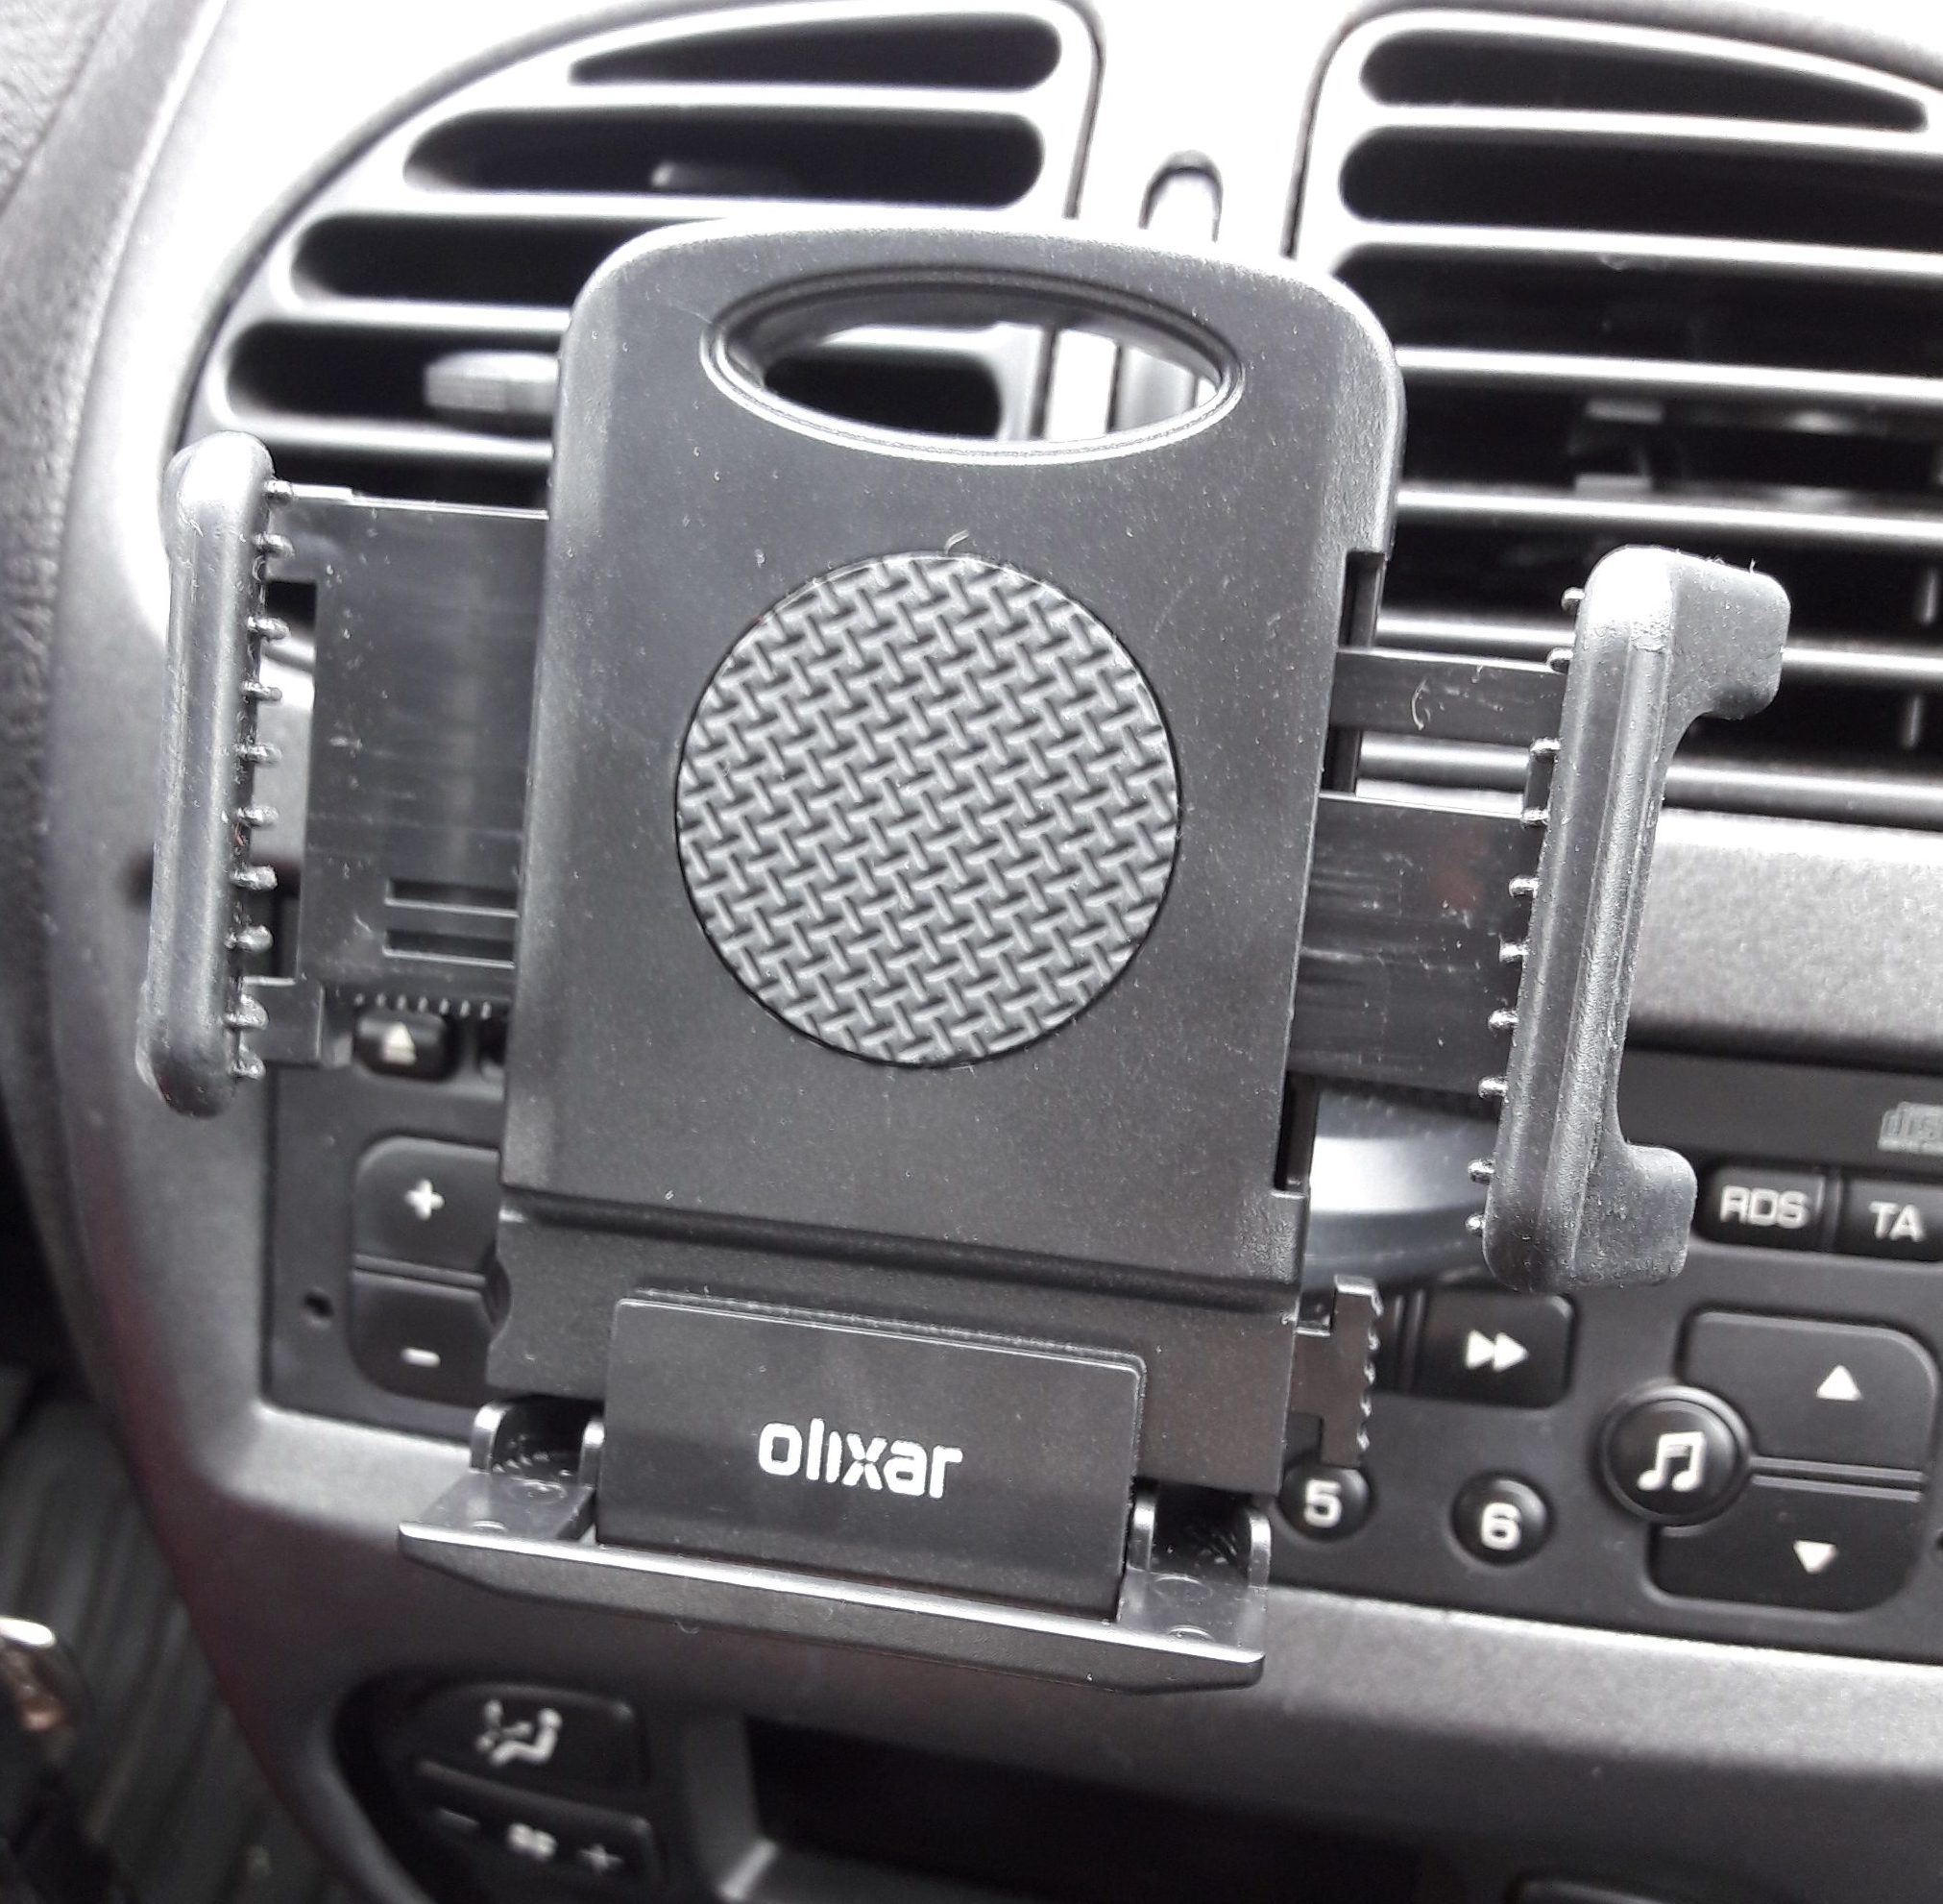 Support voiture pour smartphone Olixar